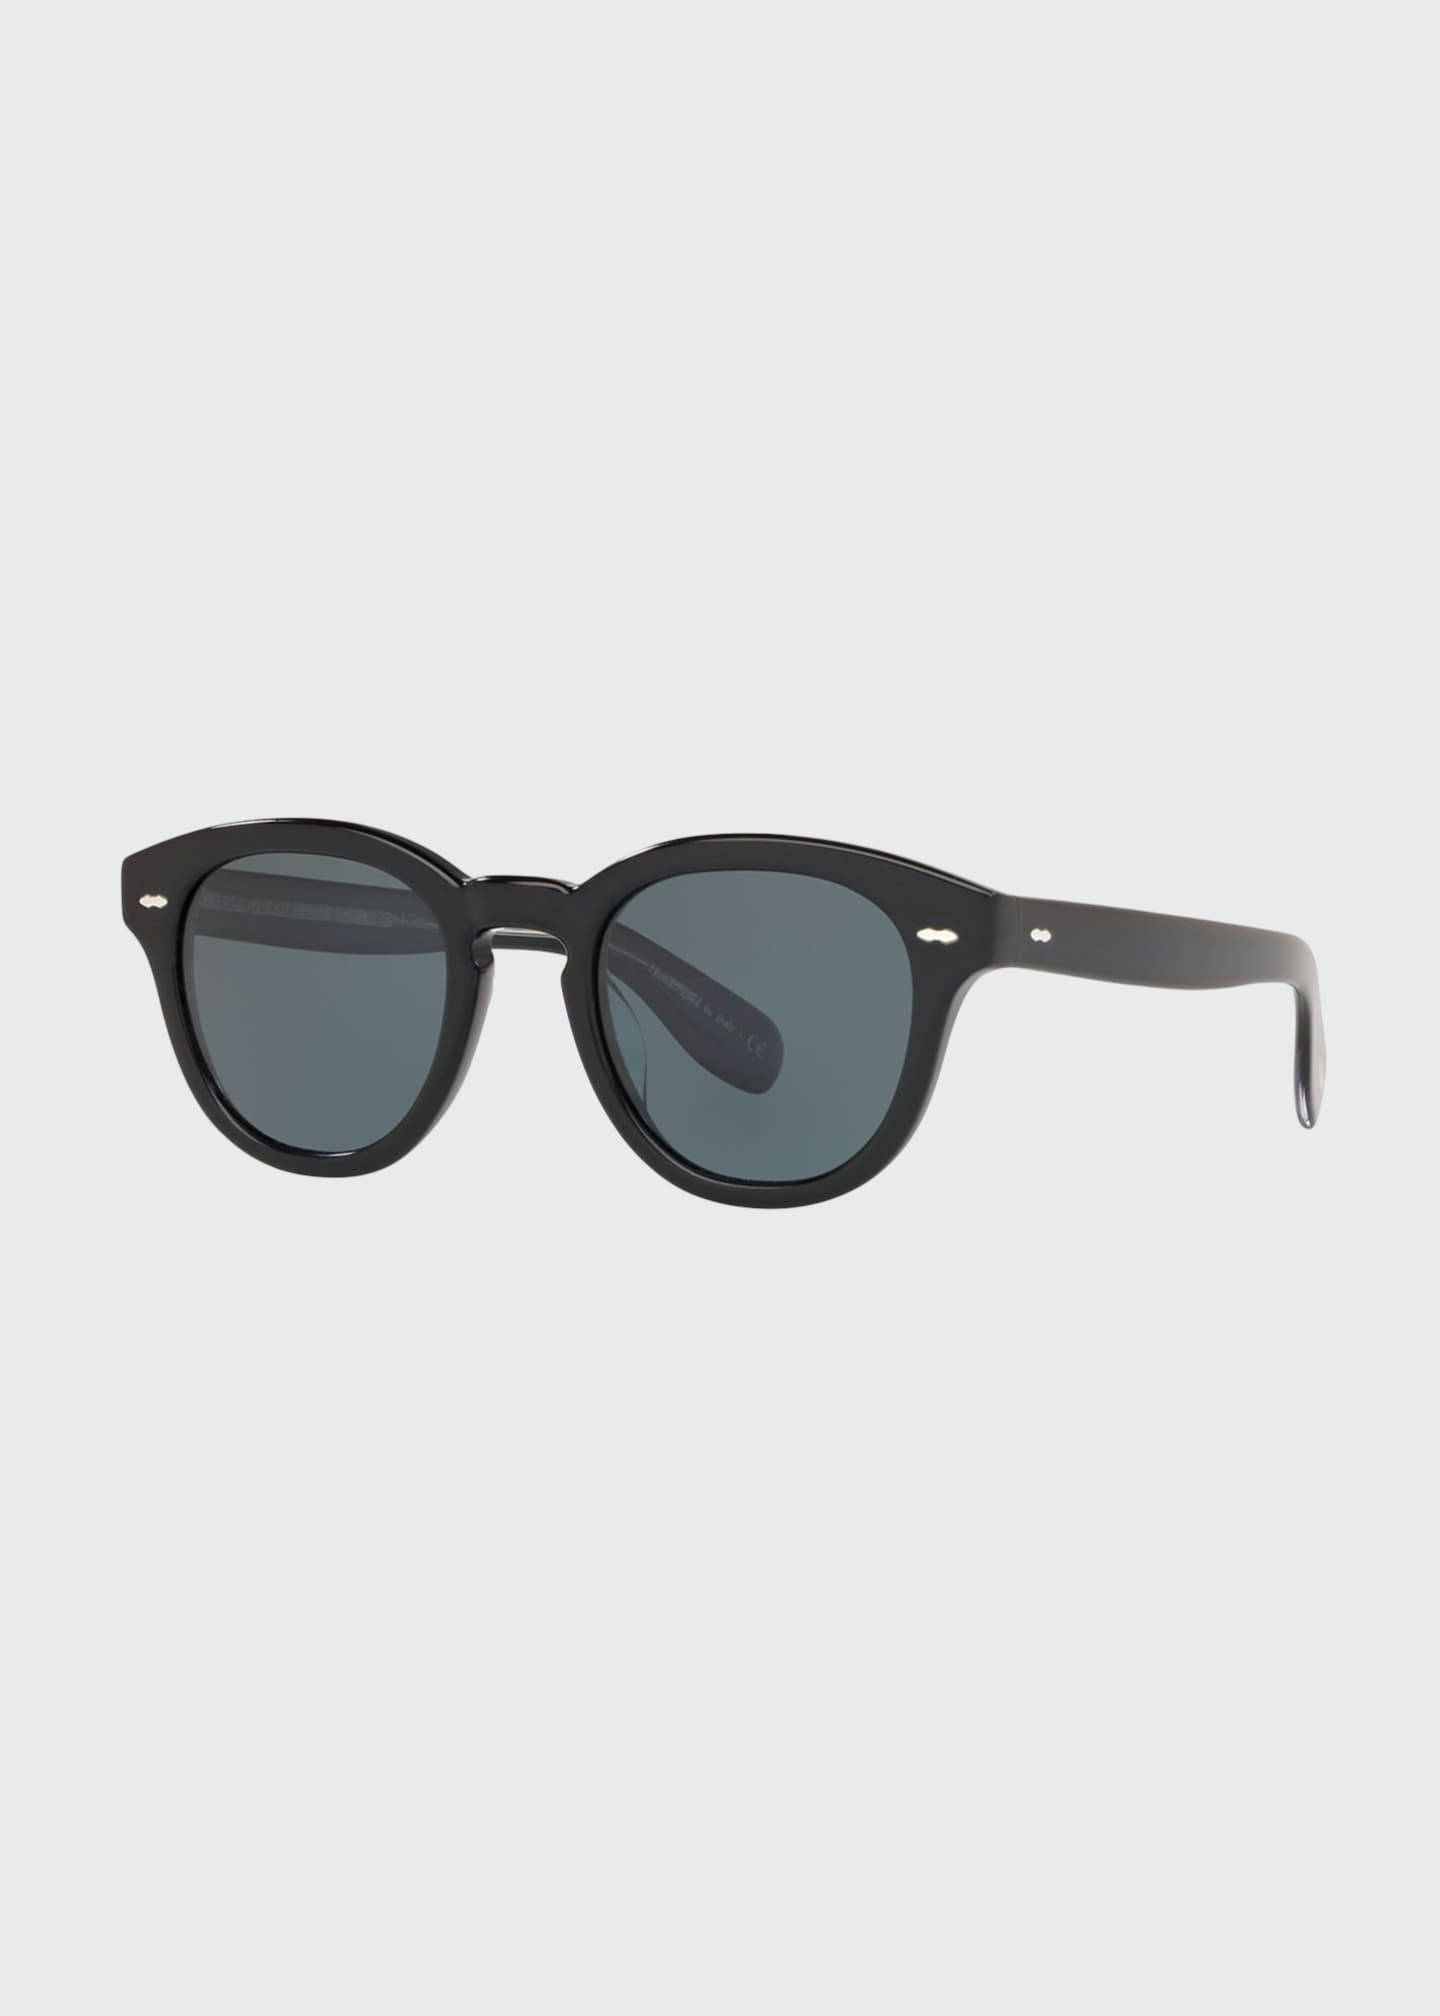 Image 1 of 2: Cary Grant Oval Acetate Sunglasses